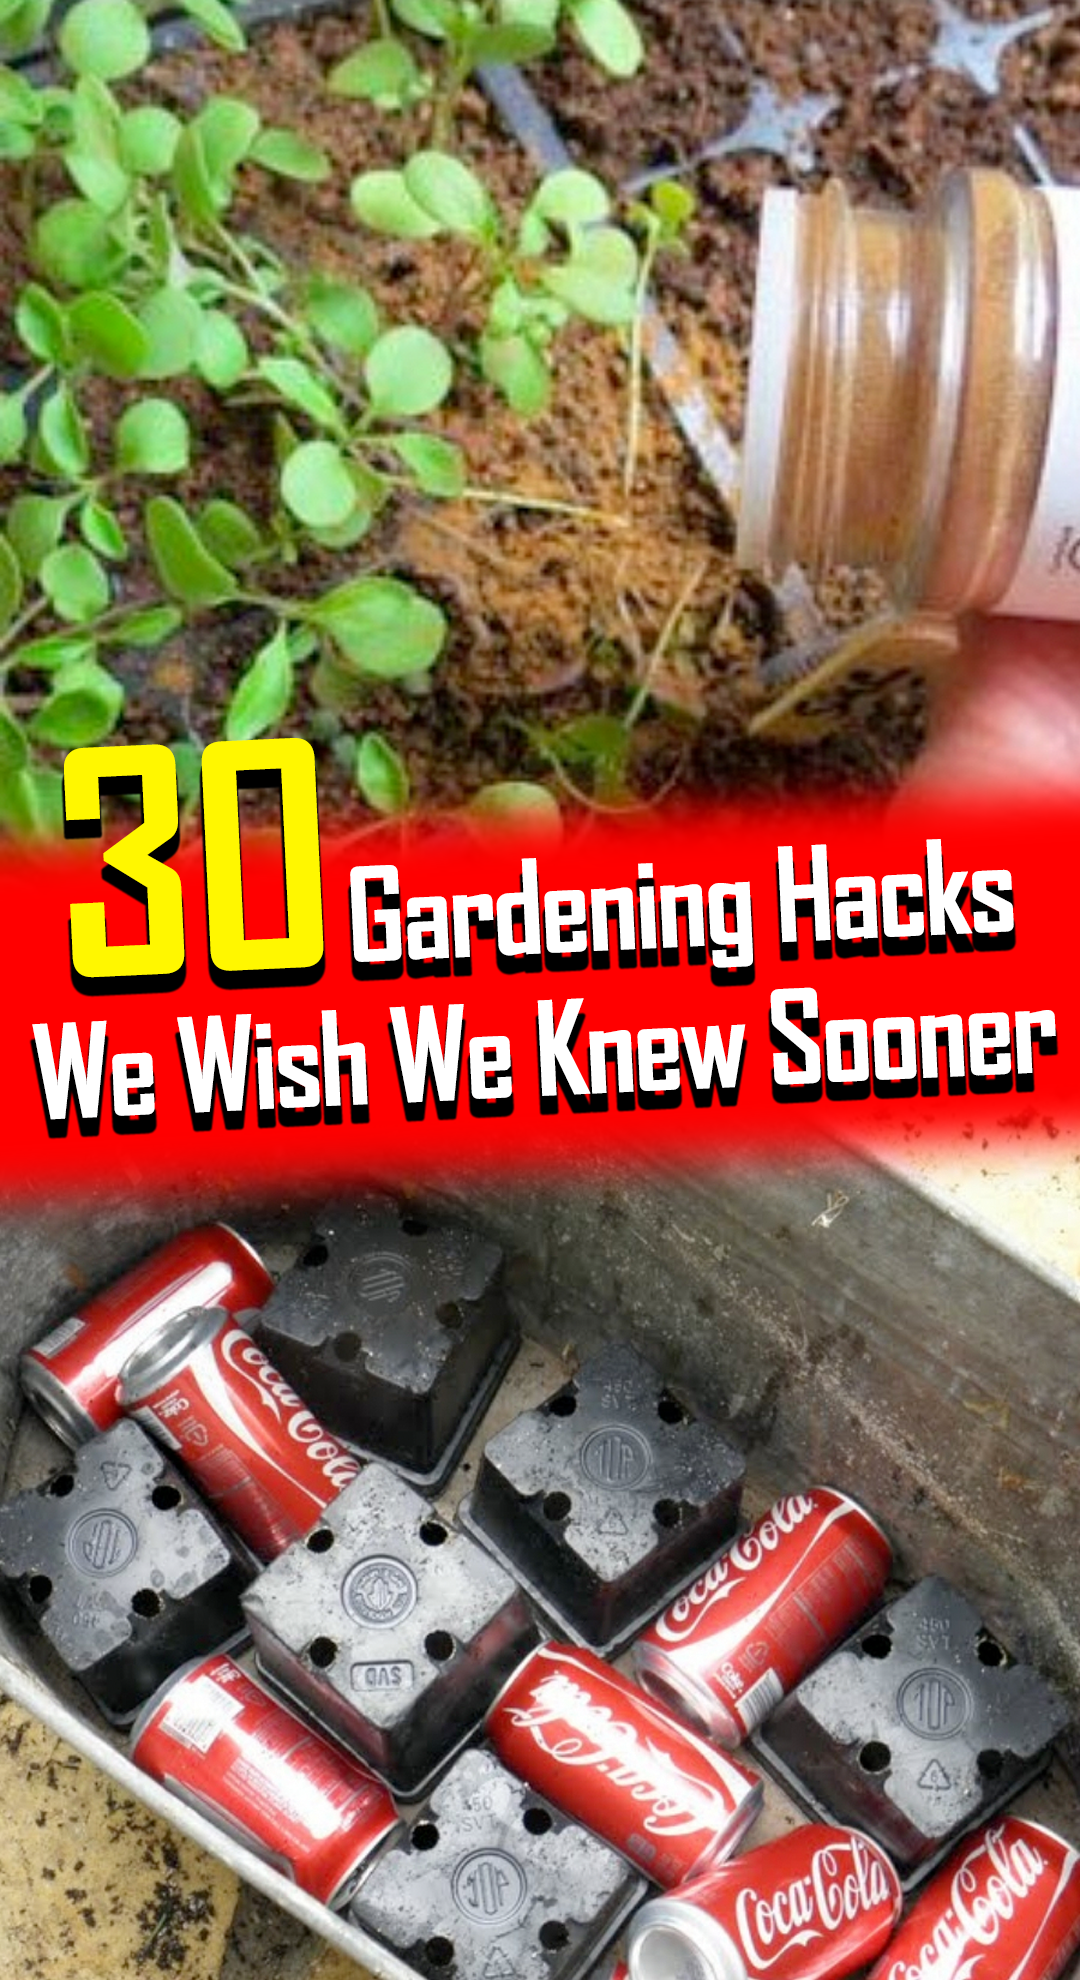 If you don't already have a fruitful garden growing in your own yard, it's never too late to start! It's also not as complicated as you think it is. In fact, you might already have tools and materials in your very own kitchen that can help get you going! These gardening hacks will show you how easy gardening can be. Who knows? You might even uncover your own green thumb!